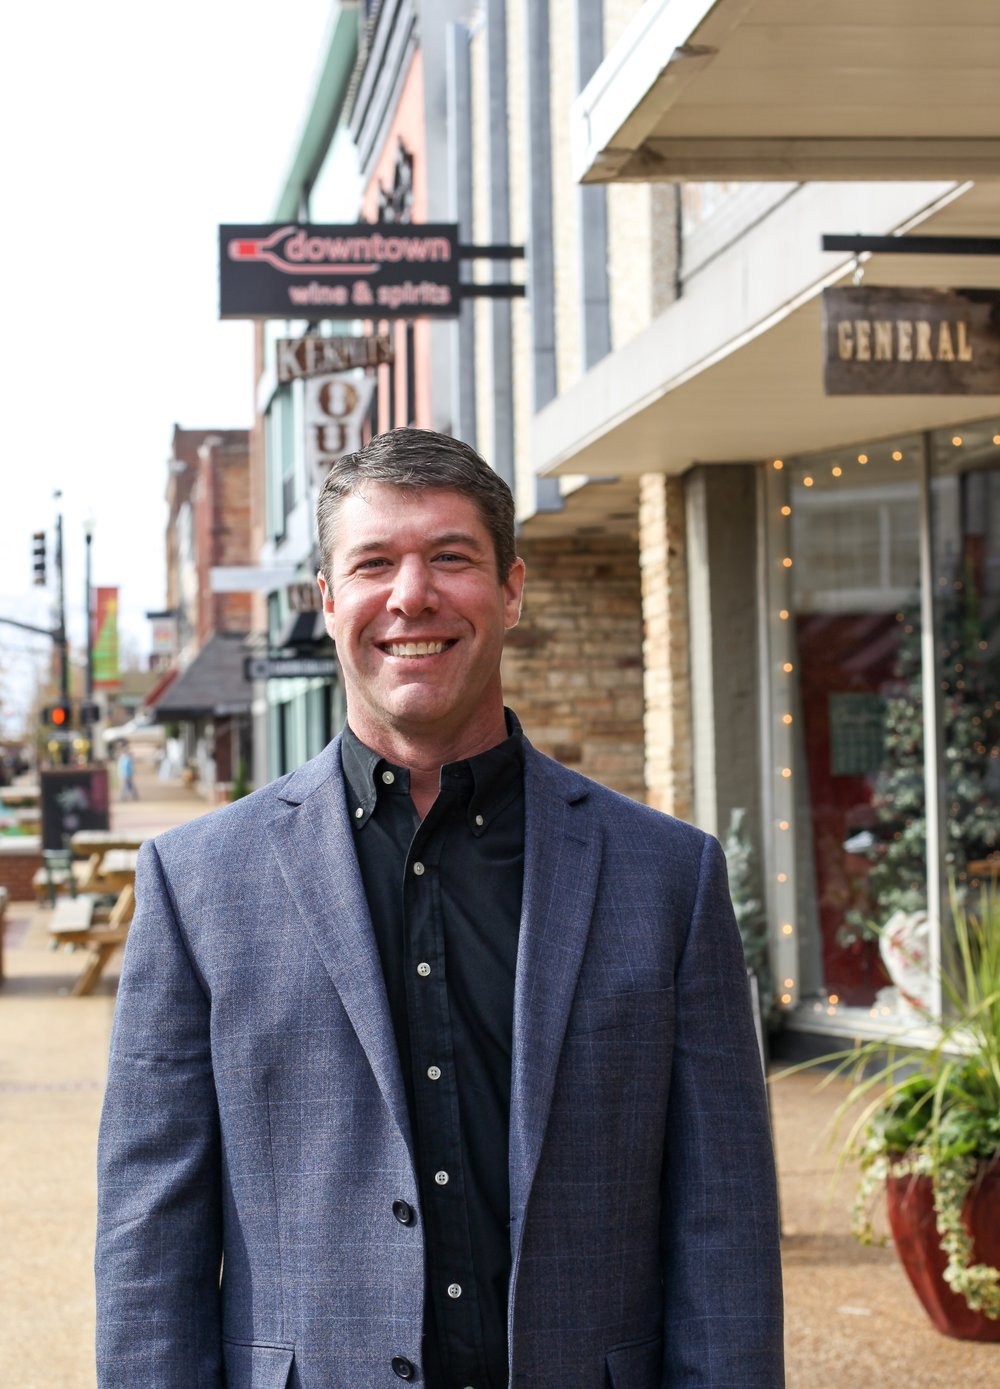 "Clay Short - PRESIDENT TRI Inc REALTORSClay is proud to be the third generation to lead TRI Inc Realtors, having learned theCommercial Real Business at the knee of his grandfather, William ""Bill"" Tate who founded the company in 1954. Both of Clay's grandparents and mother, Ellen Short, are renown Hall of Fame Realtors with Clay's father, Jeffrey Short, receiving the first general appraiser designation in the State of Mississippi.""There was never a holiday meal that Real Estate wasn't a topic. I've been in it all my life, and officially twenty years.""While none can compare to Clay's real estate pedigree, it's been his dedication to his clients' best interest that has earned him his esteemed reputation for market knowledge, and strategic deal structuring while maintaining a high regard for his integrity and business practices. Clay offers advisory in strategic real estate planning, consulting, brokerage services, investment acquisitions and sales, property management, site selection and development.Phone: (662) 842-8283Mobile: (662) 231-4262Email:cshort@trirealestate.net"